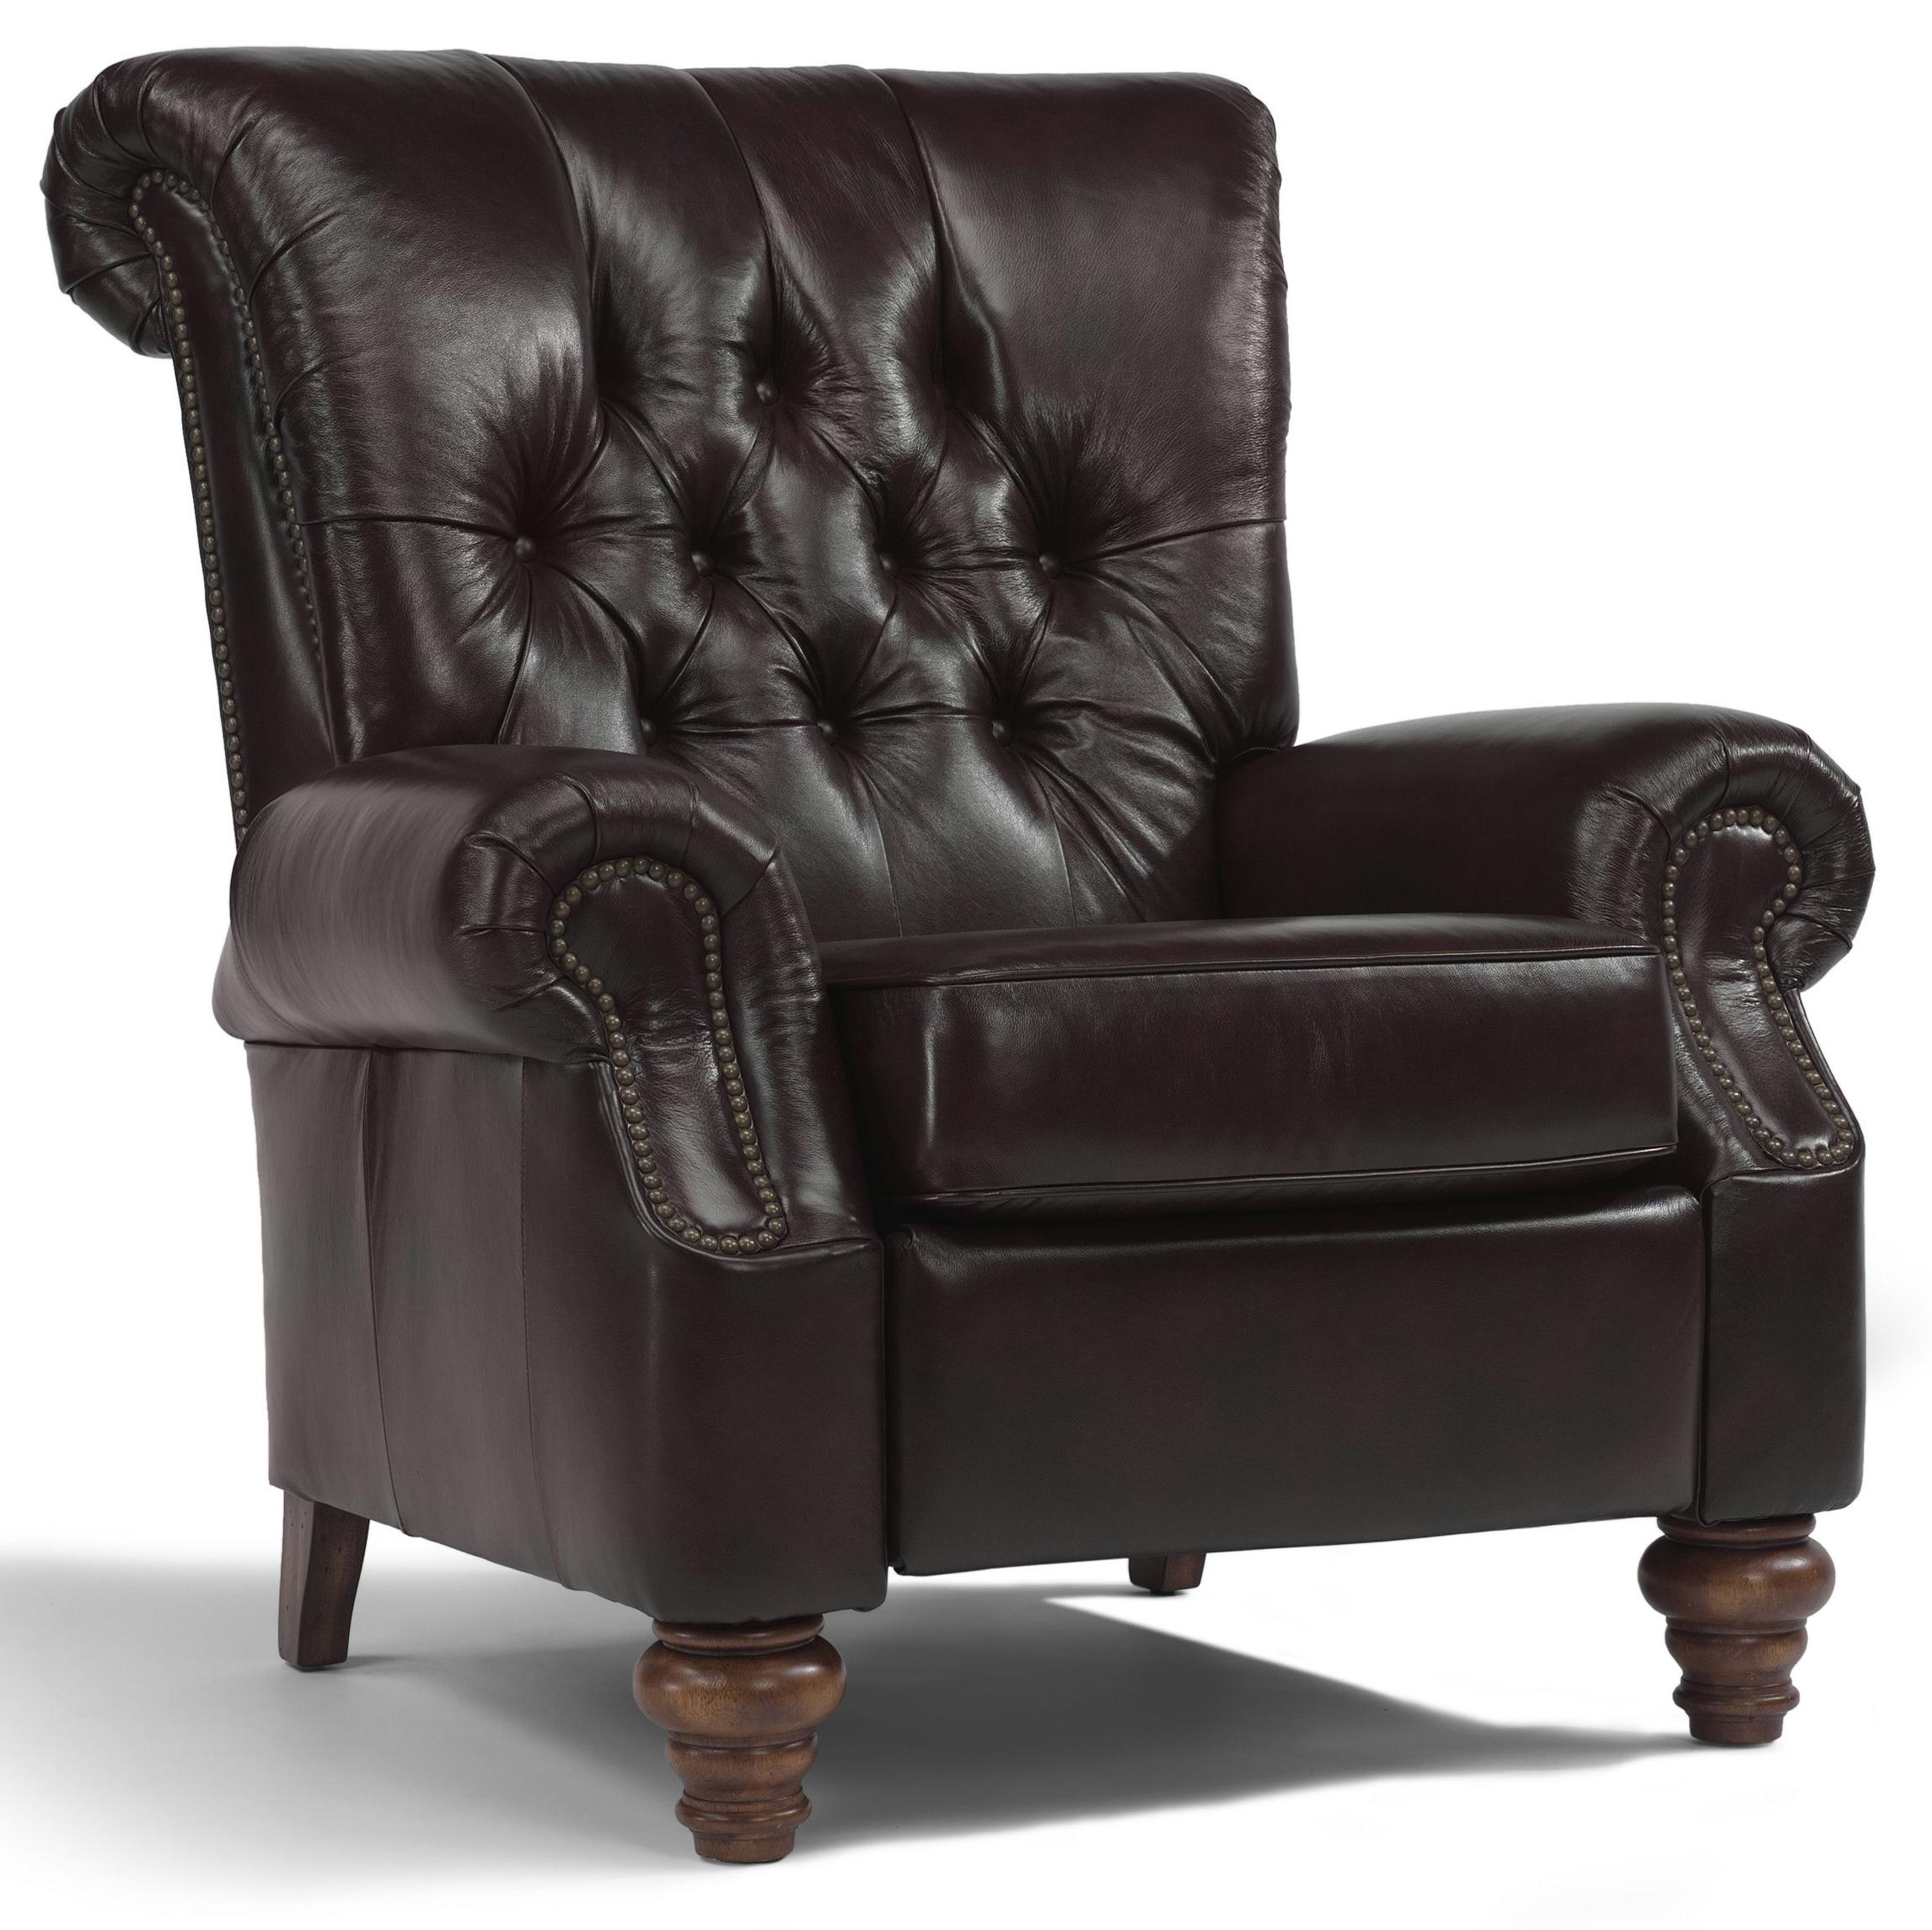 Accents Equestrian High Leg Recliner by Flexsteel at O'Dunk & O'Bright Furniture